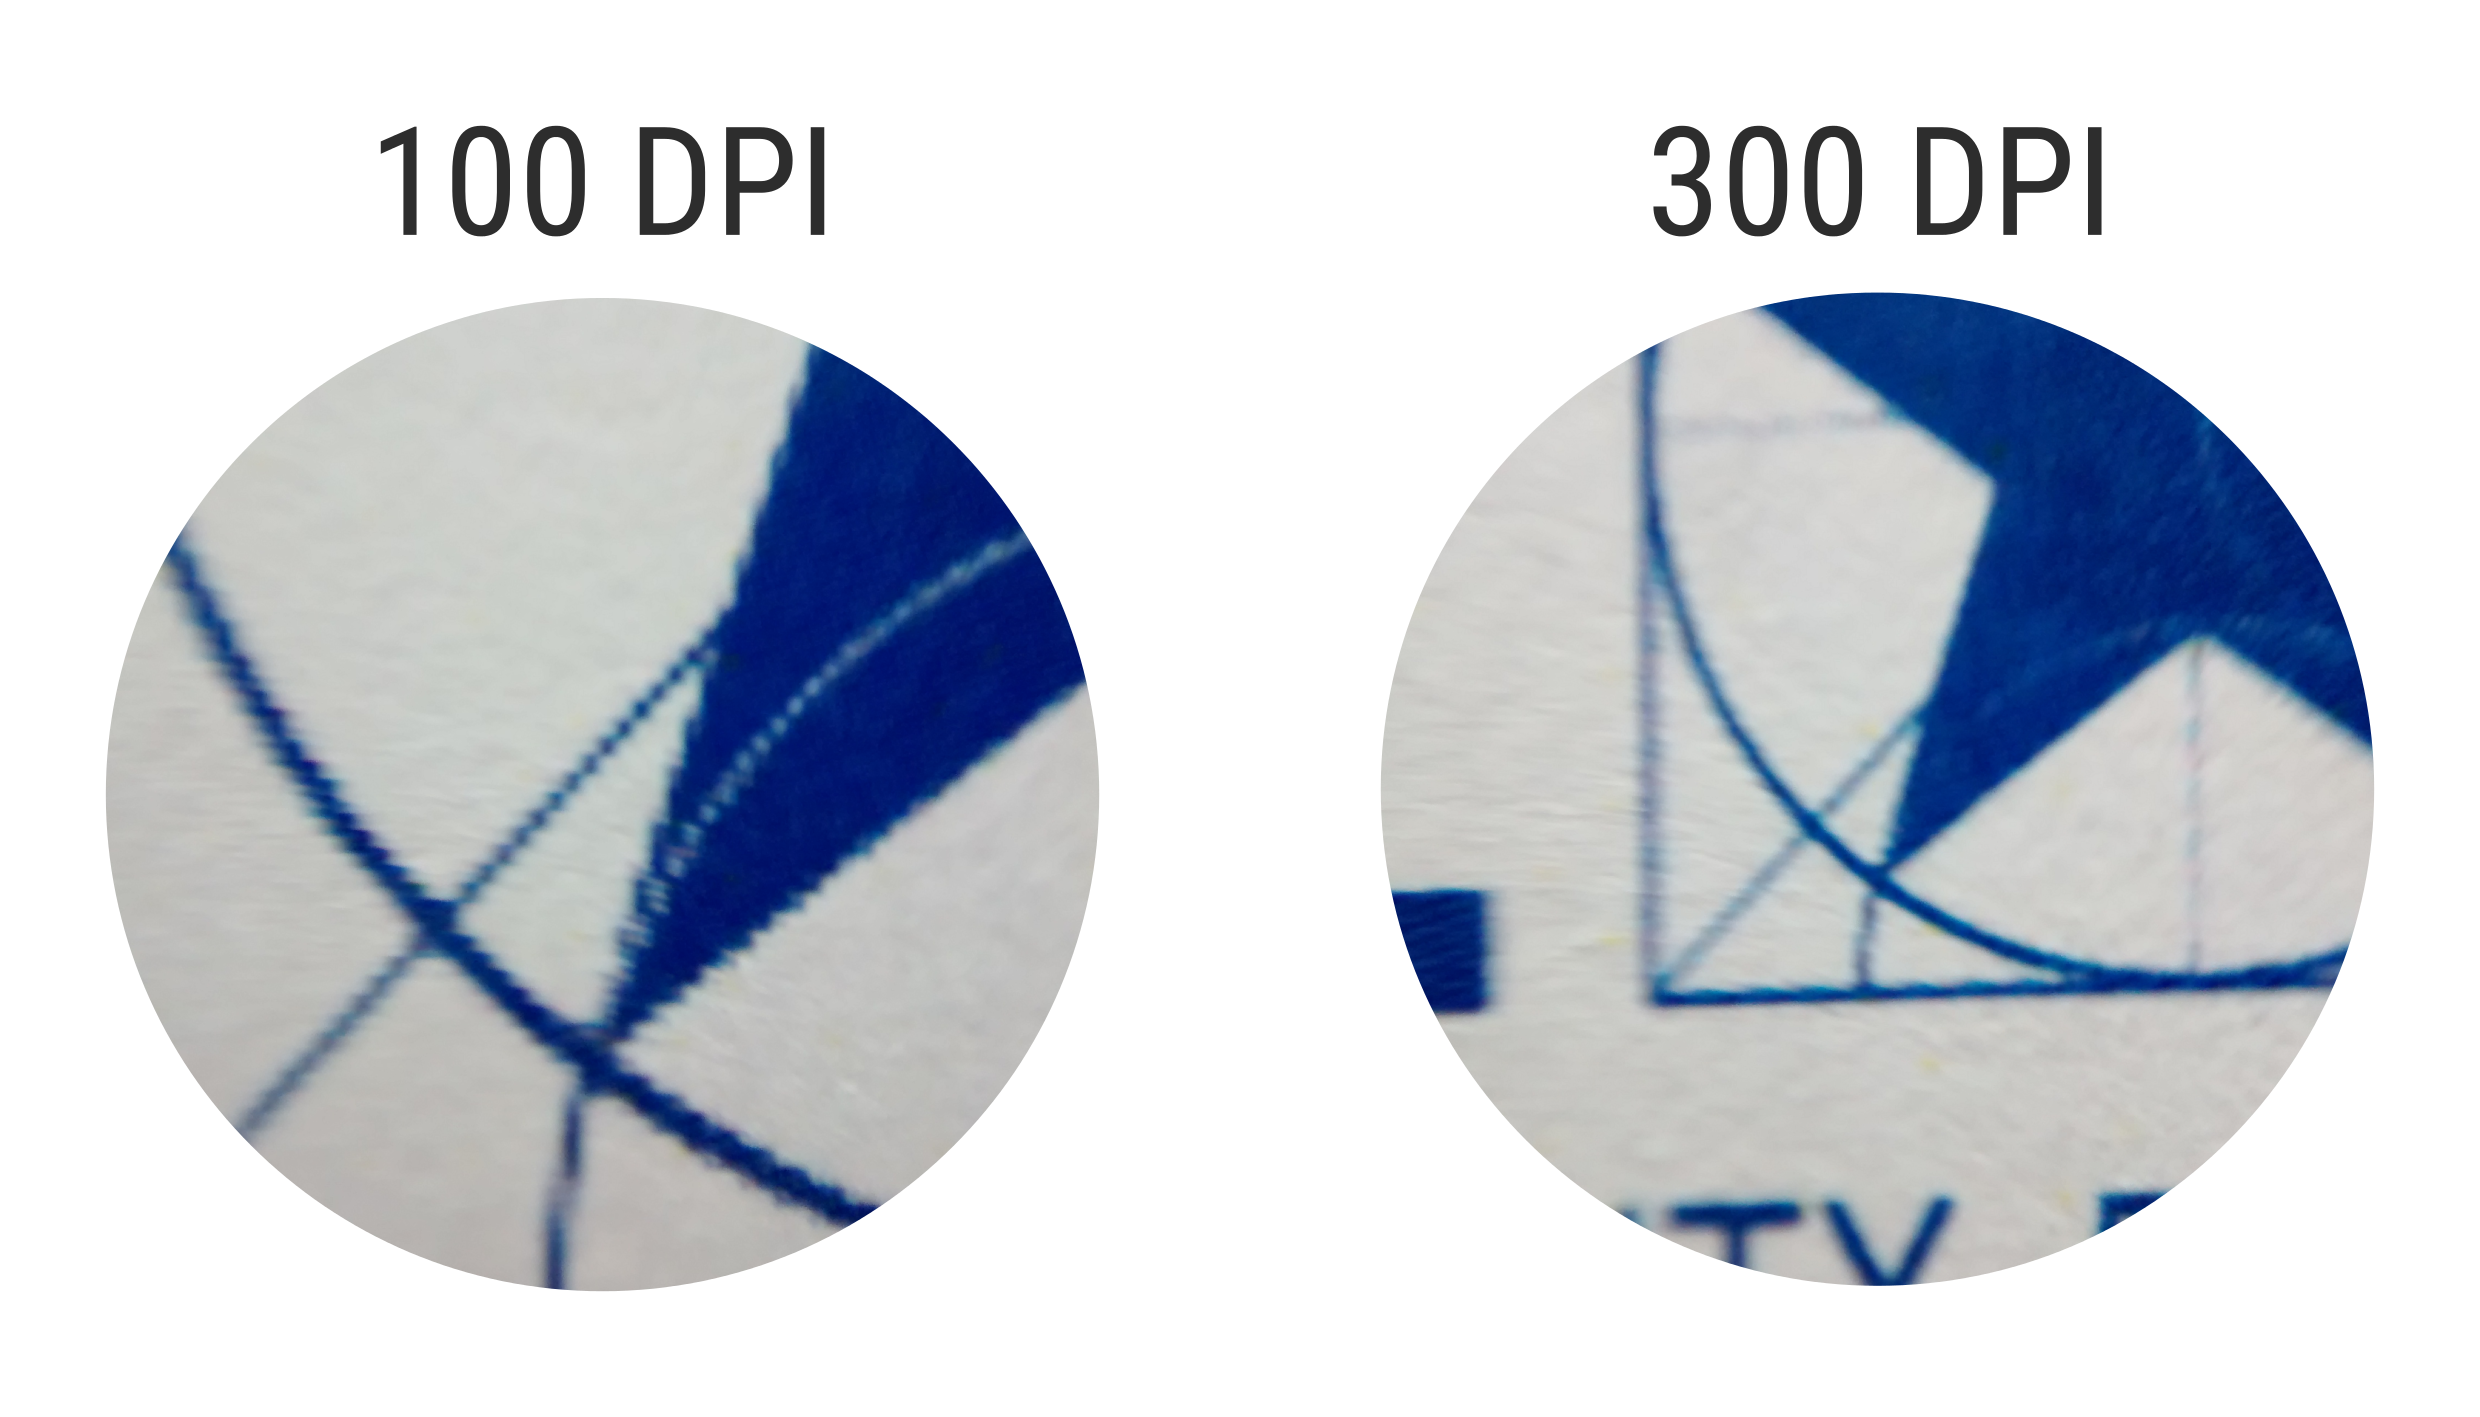 Details on different DPI ratios